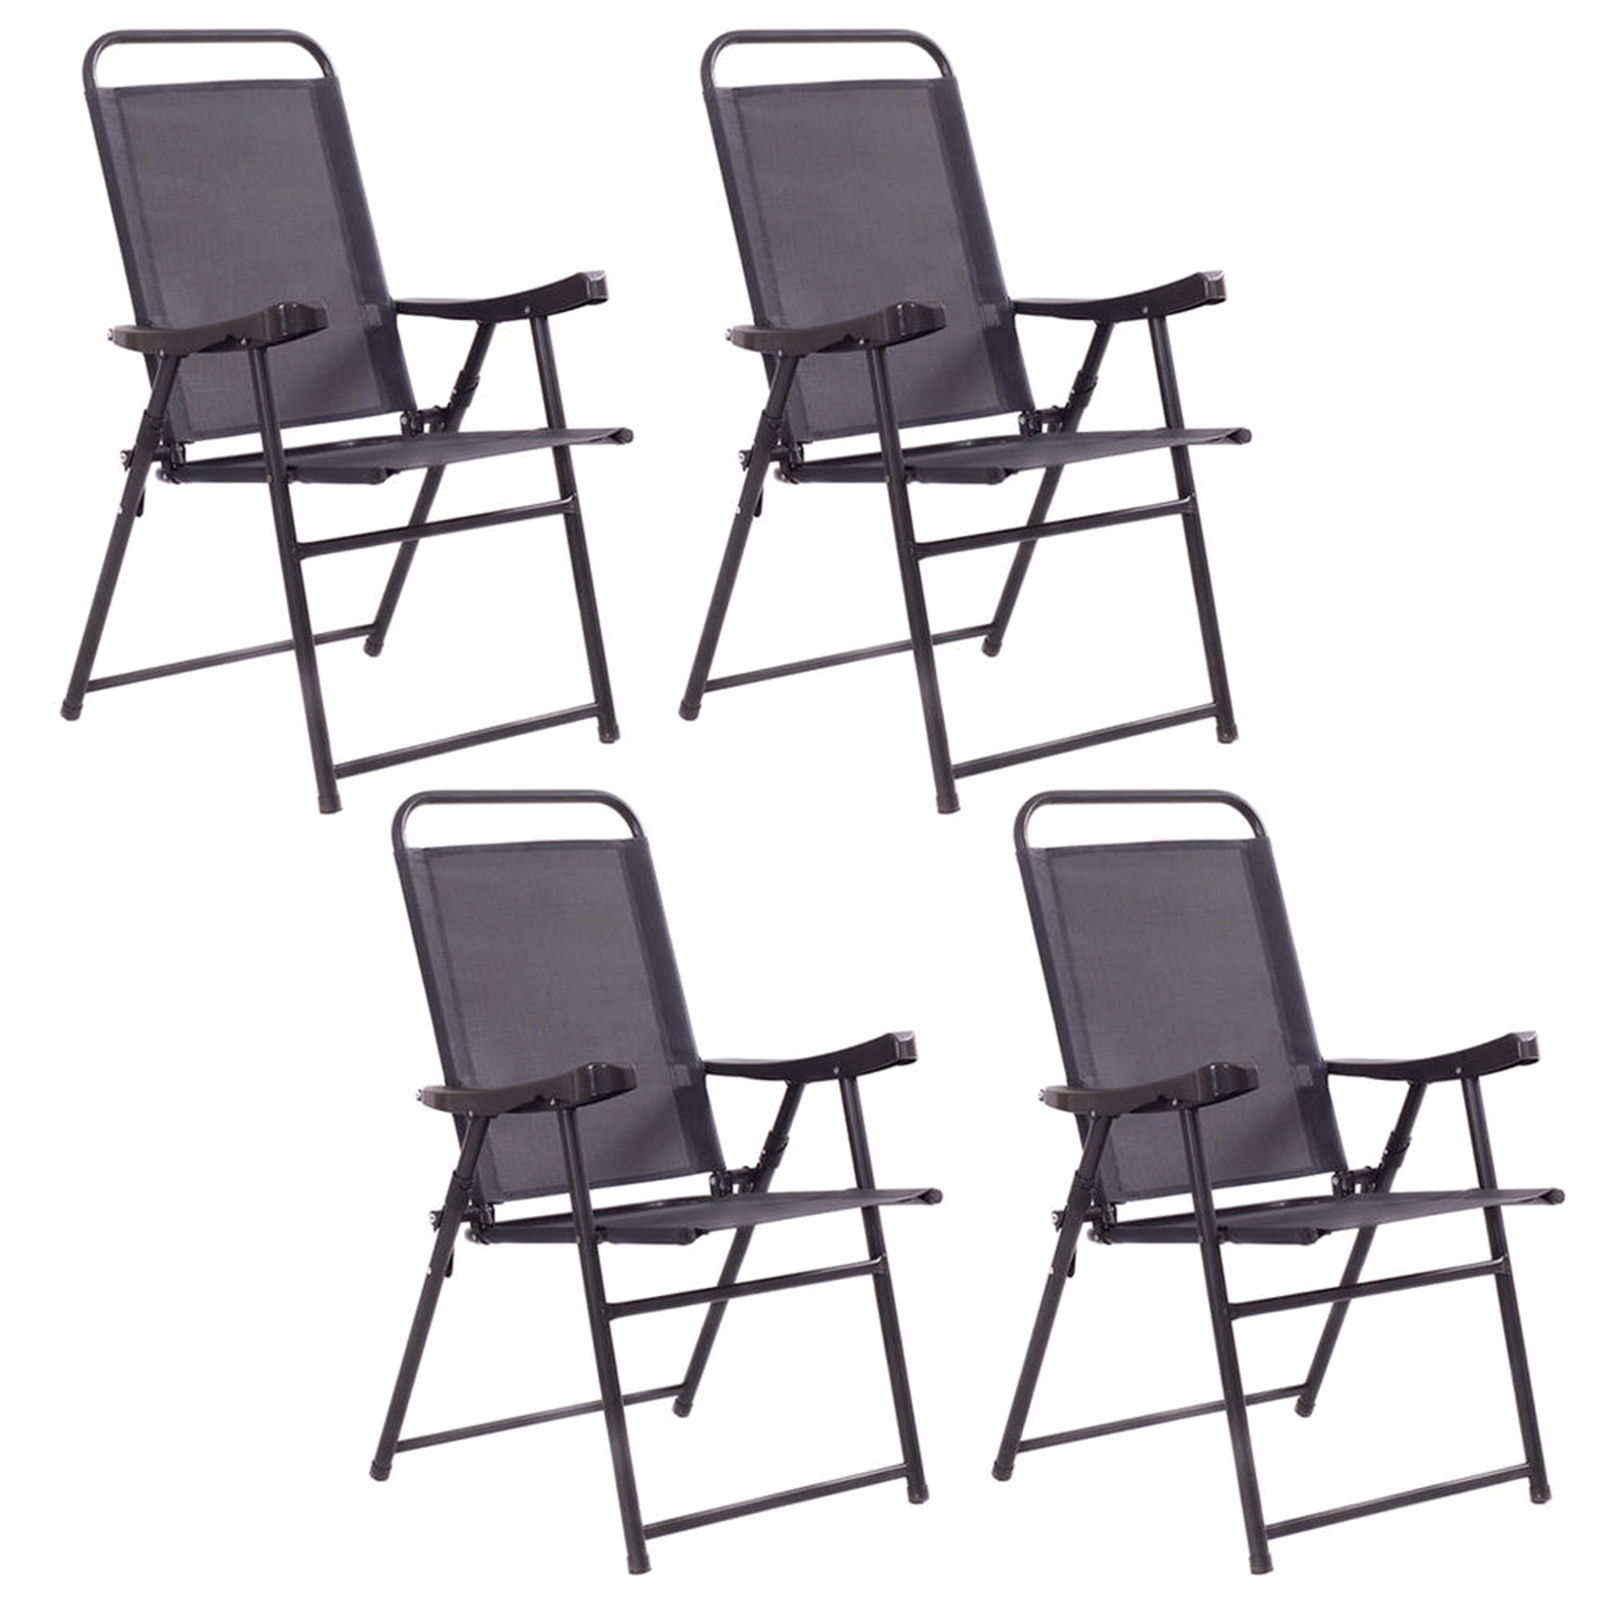 black patio chairs red office chair without wheels outdoor seating sears costway set of 4 folding sling furniture camping pool beach with armrest